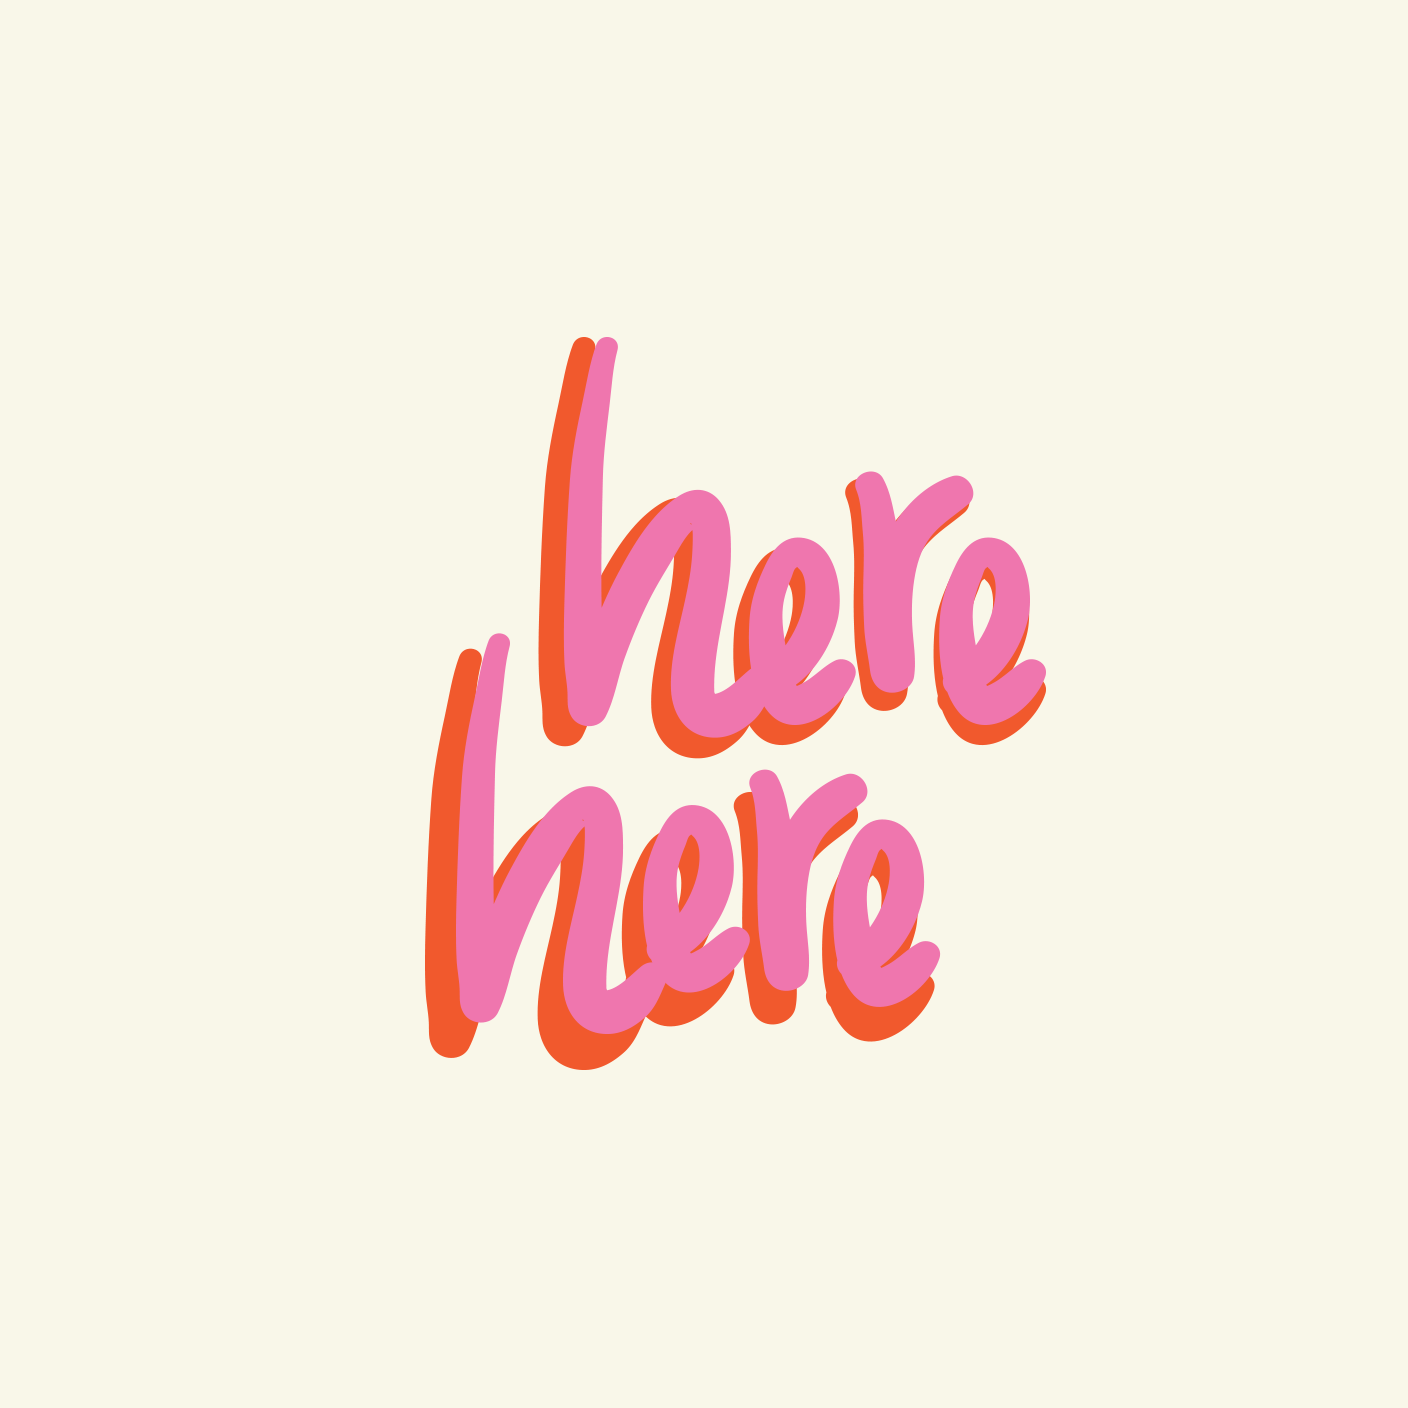 here-here-here.png